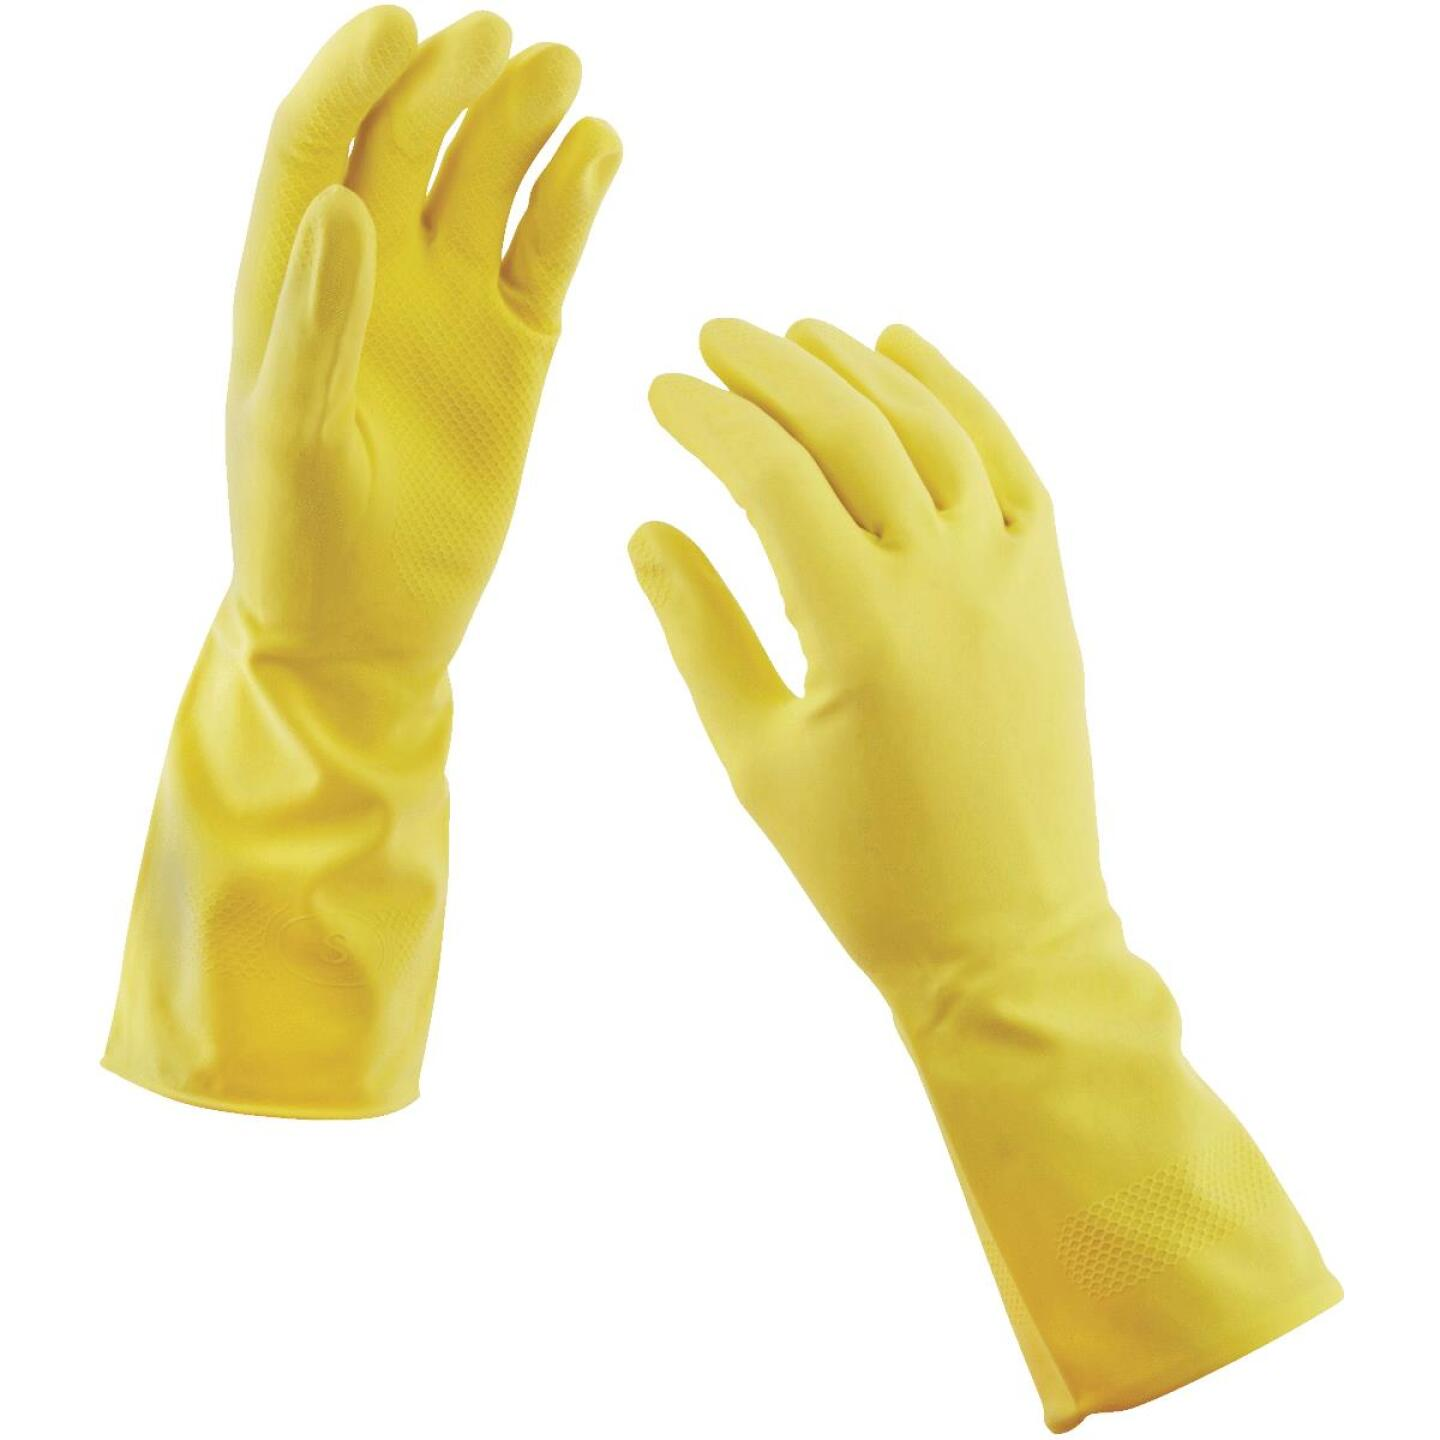 Soft Scrub Medium Latex Rubber Glove (2-Pack) Image 3